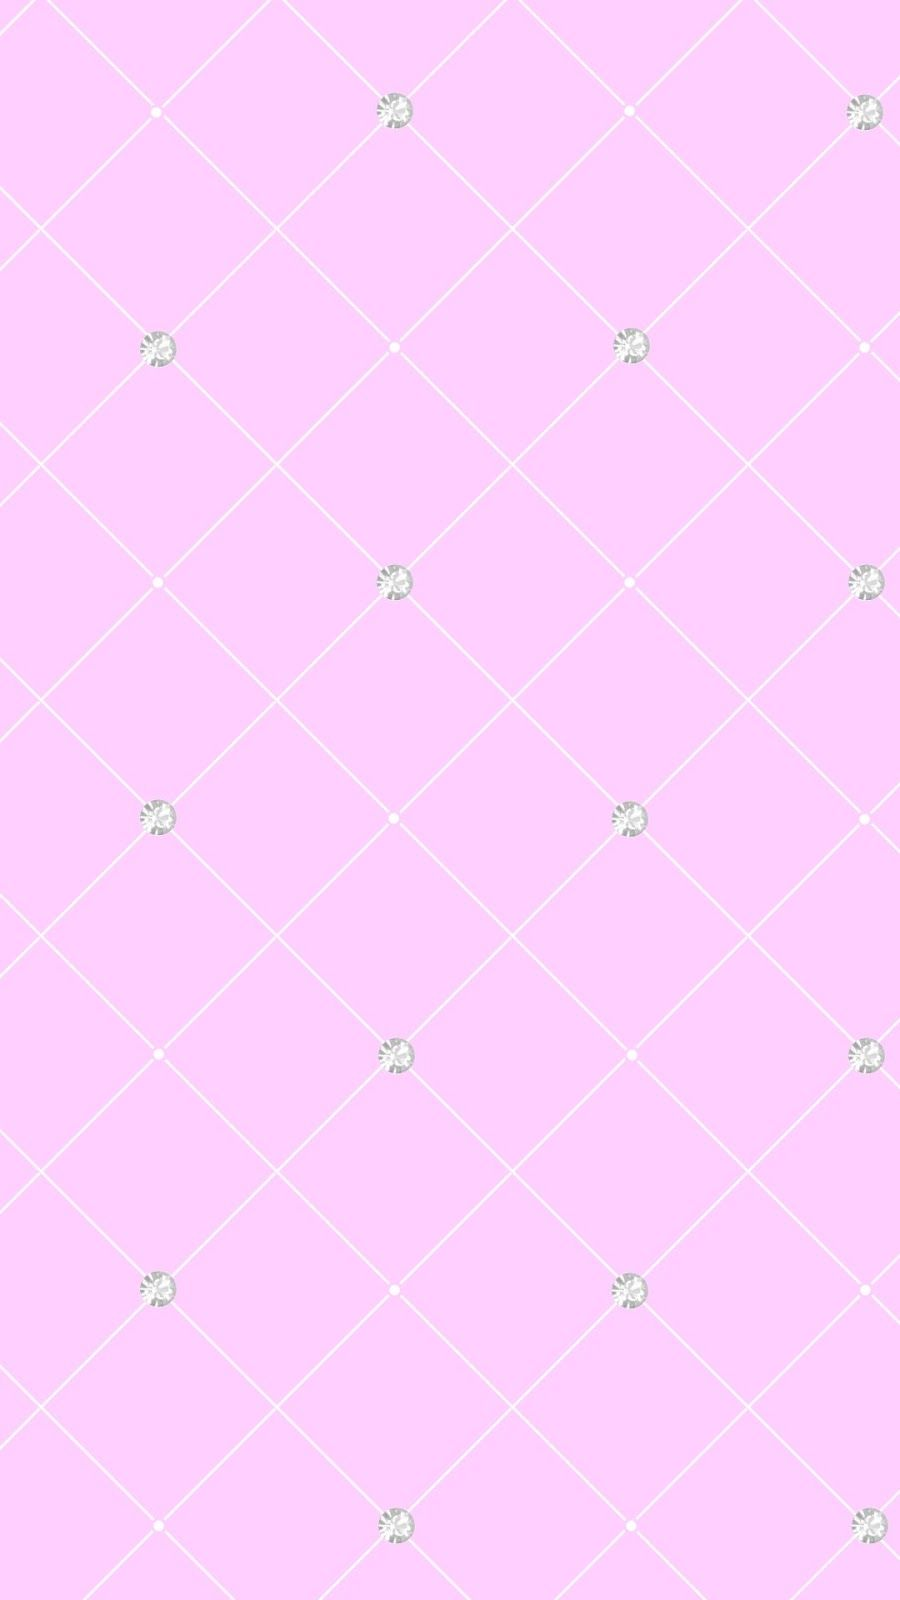 Pastel Pink Check Gems Jewels Iphone Phone Wallpaper Background